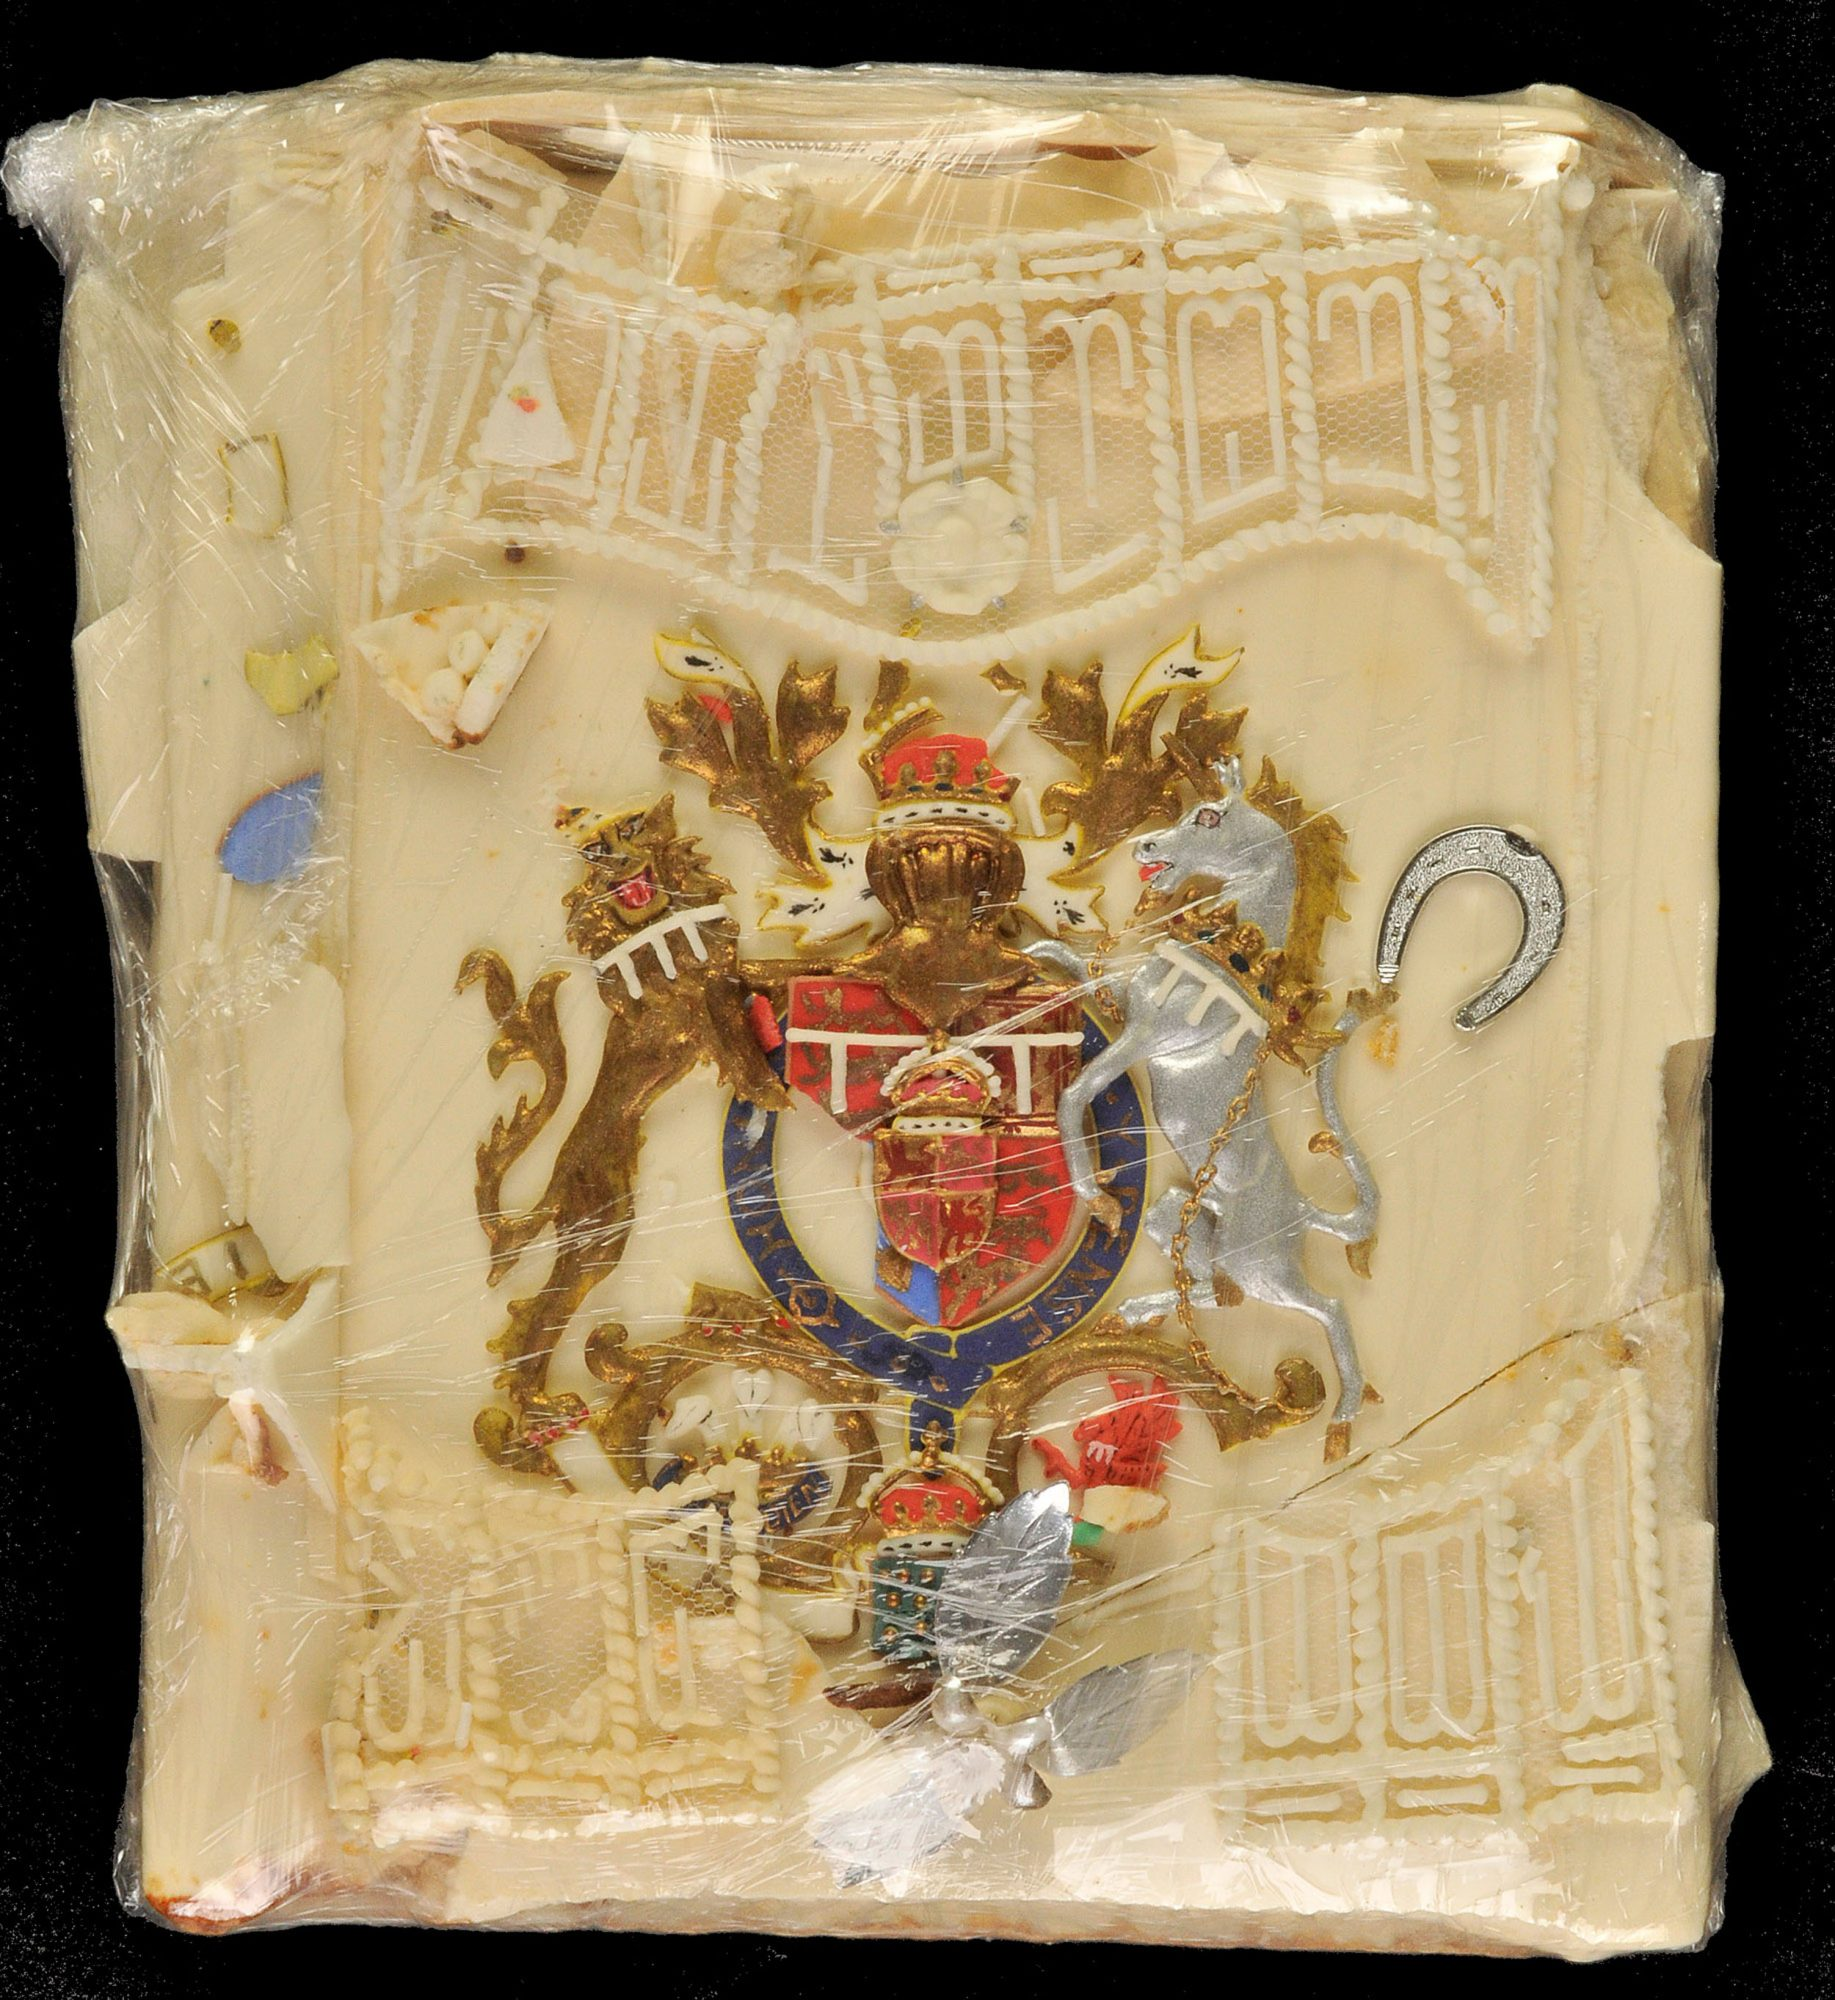 A slice of Prince Charles and Princess Diana's wedding cake up for auction - Aug 2008